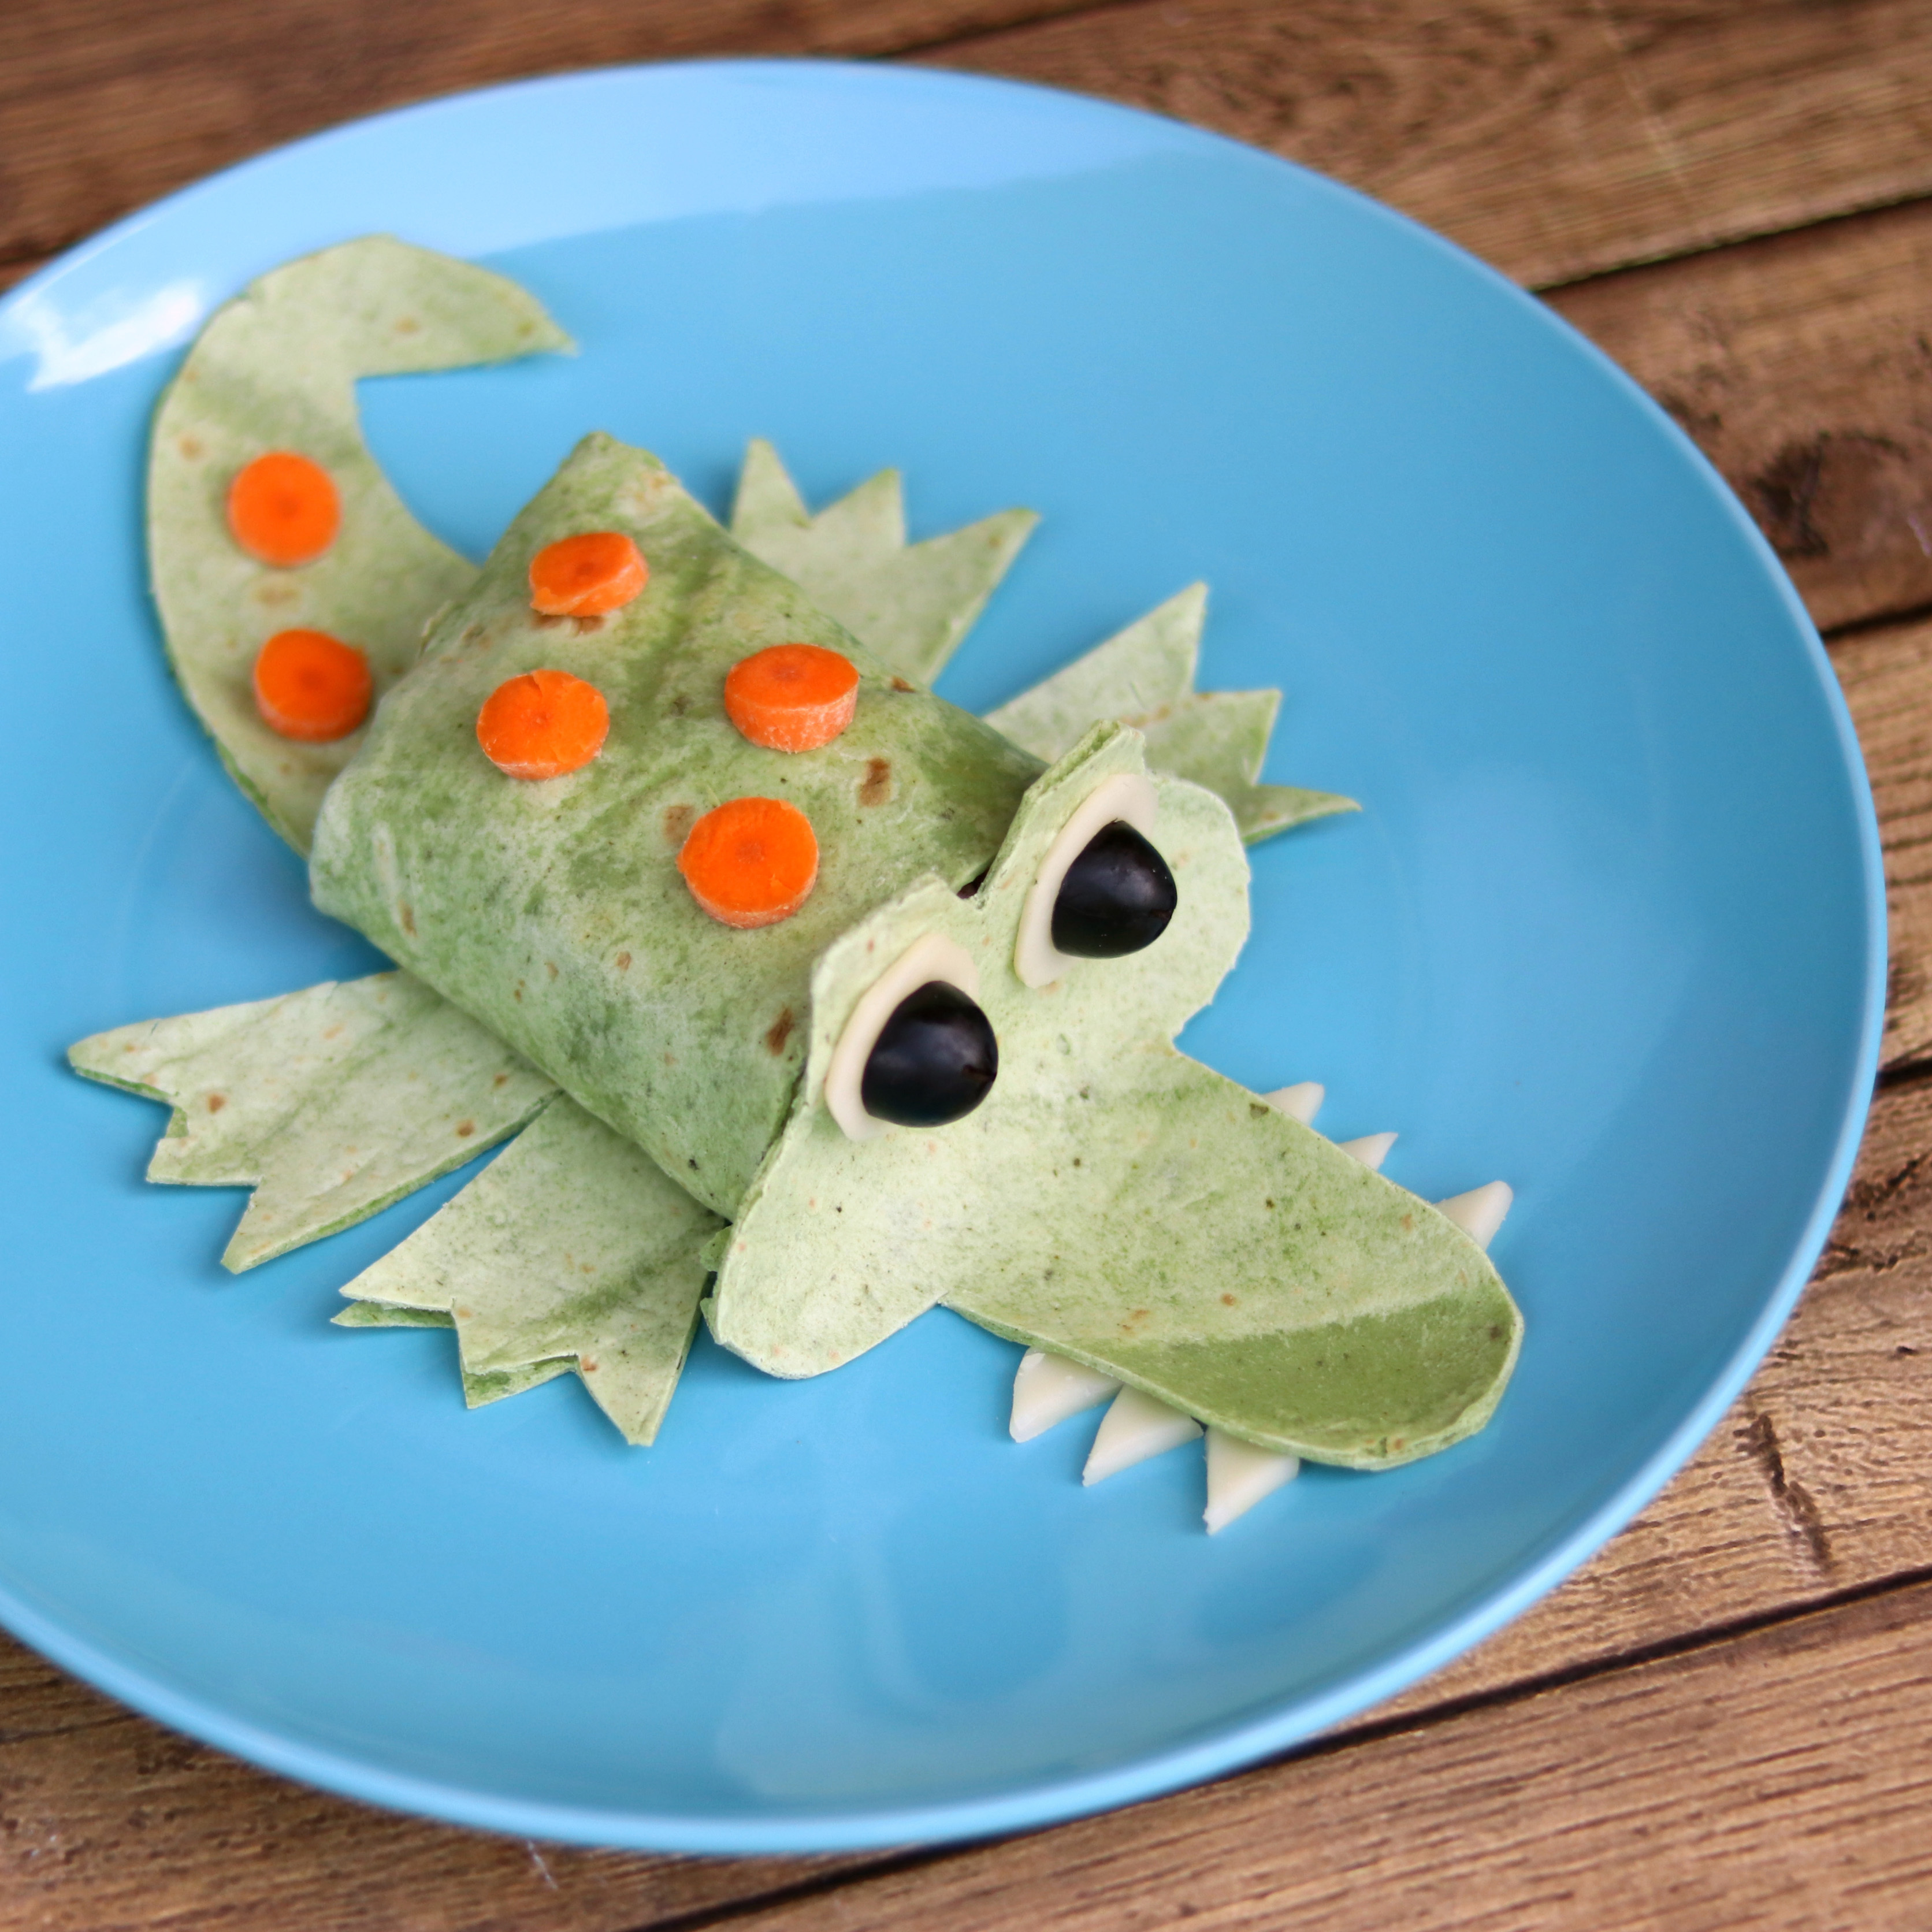 Silly Alligator Spinach Wrap Allrecipes Trusted Brands